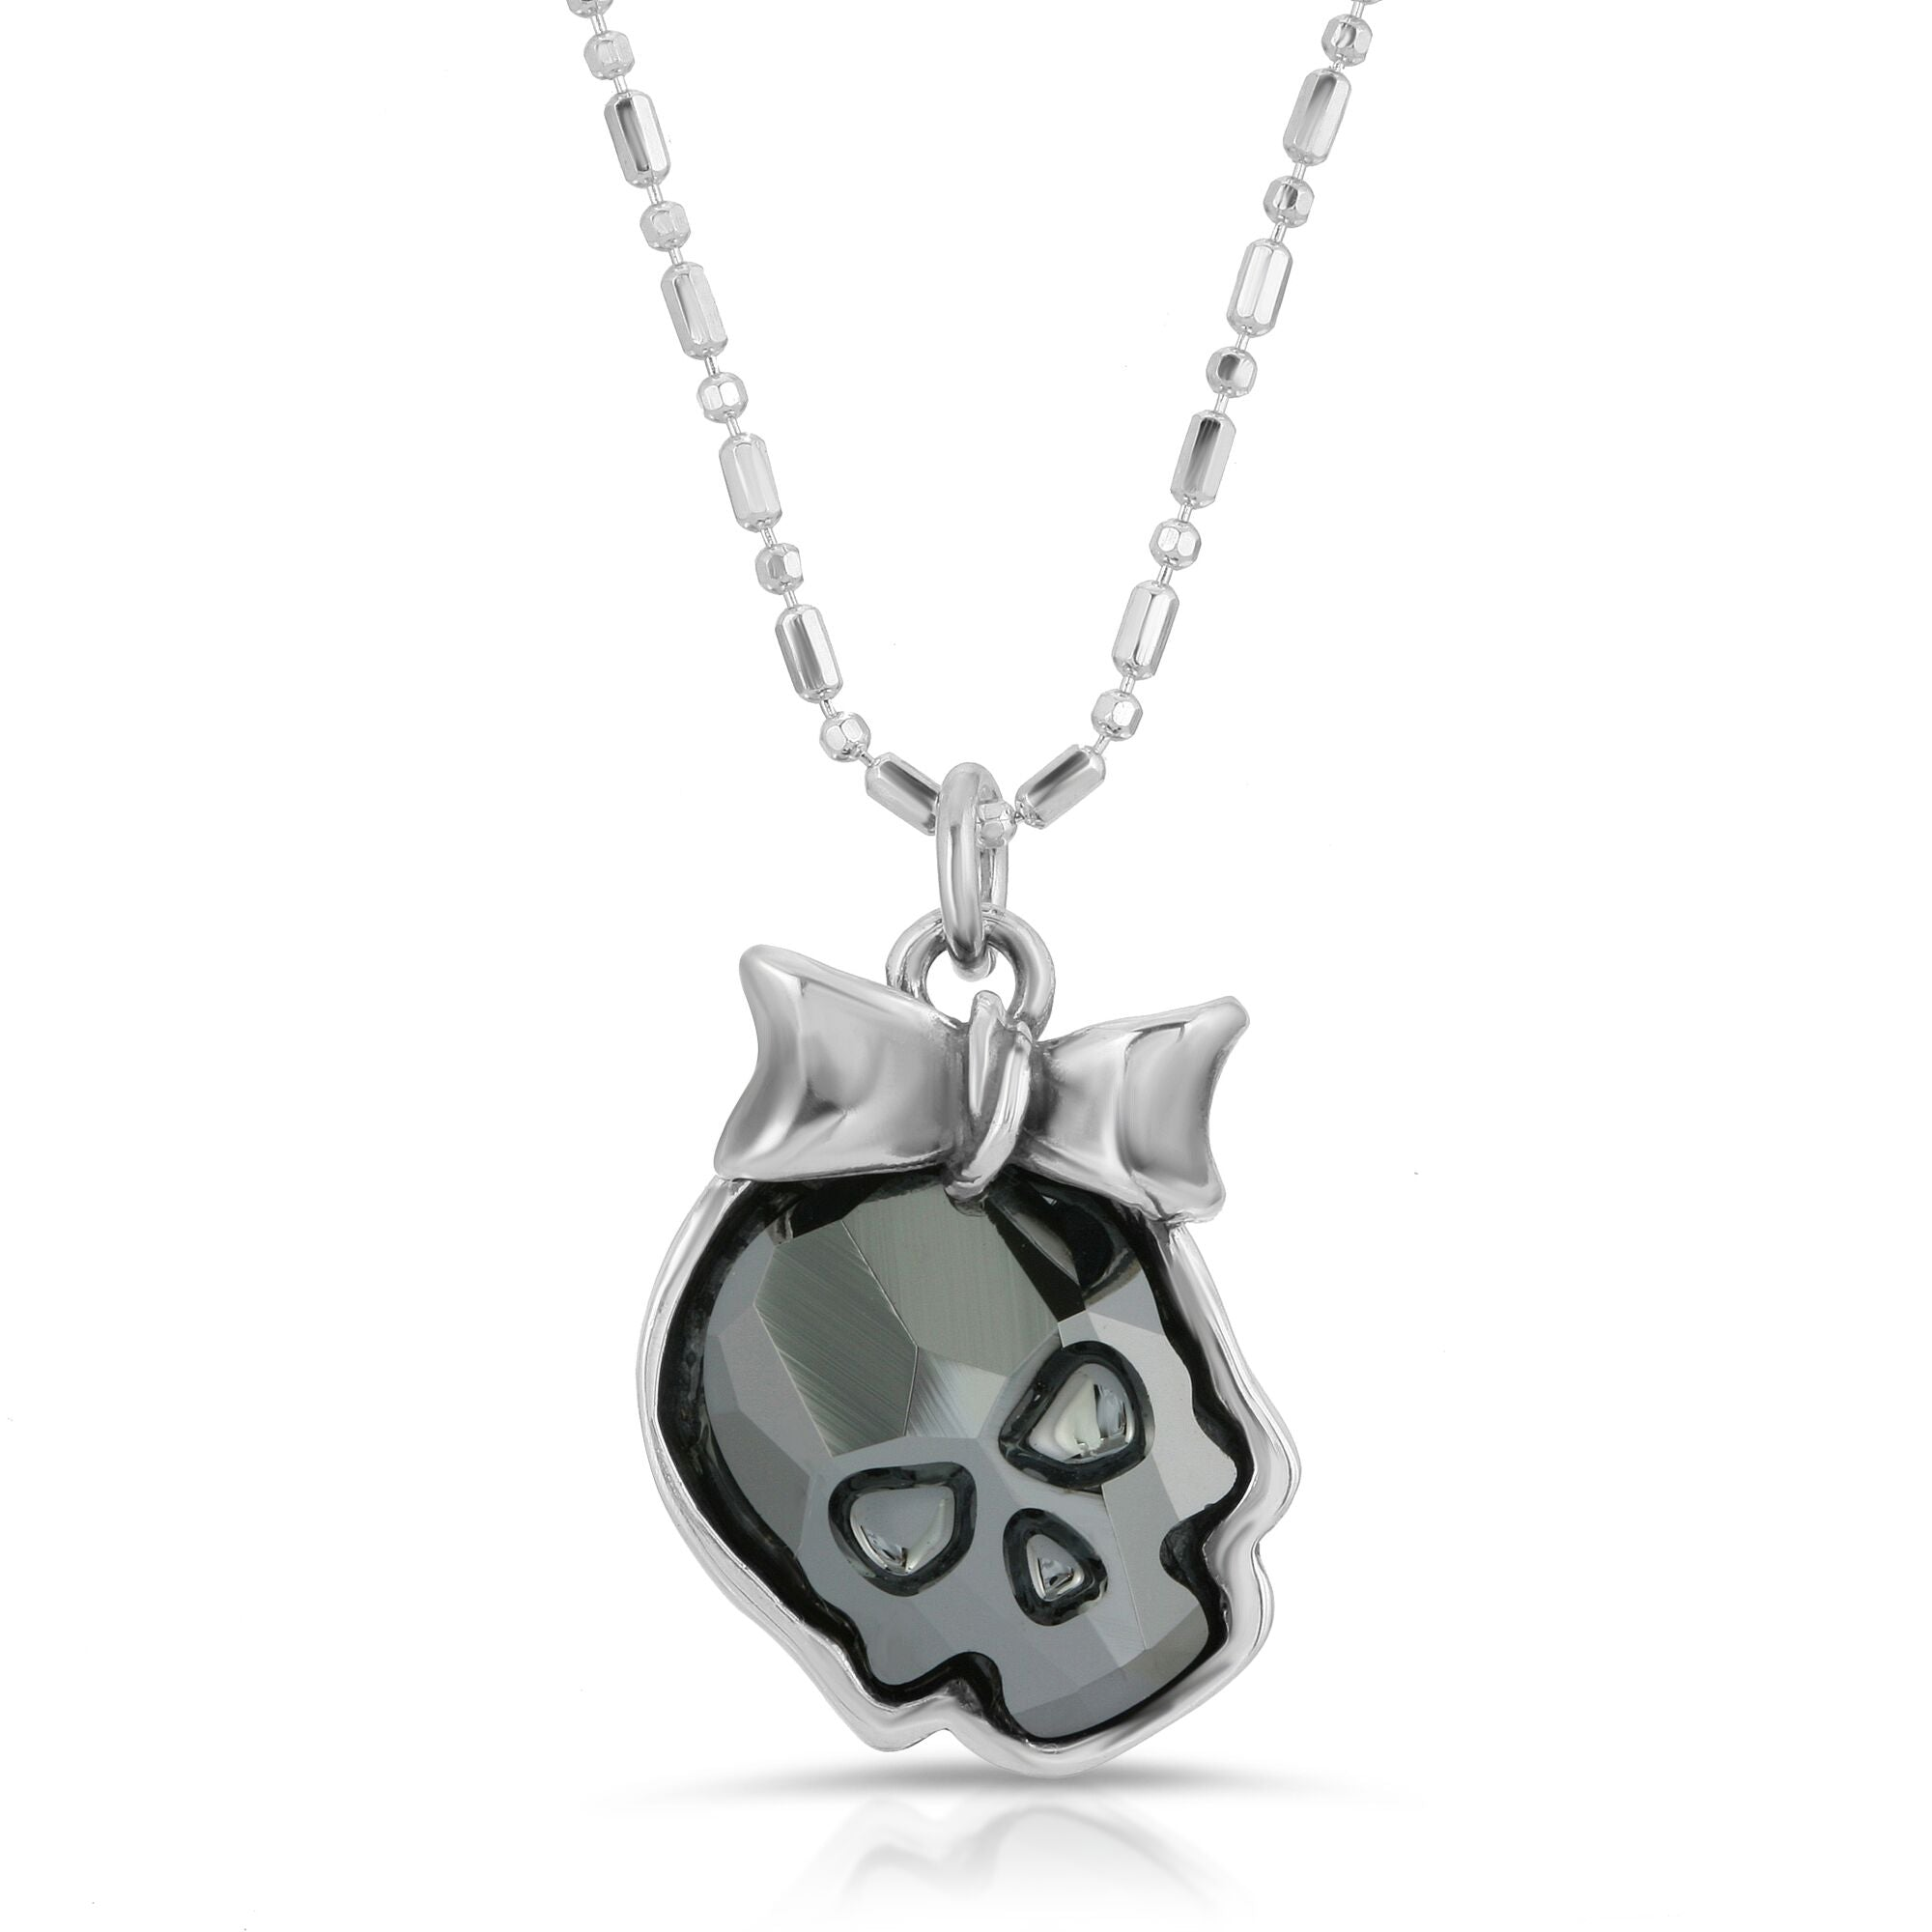 The W brothers Swarovski Skull Necklace in chrome black with a gorgeous silver ribbon crafted from premium Grade A Sterling Silver. Perfect jewelry accessory necklace for fashionable statement women. Available at www.thewbros.com